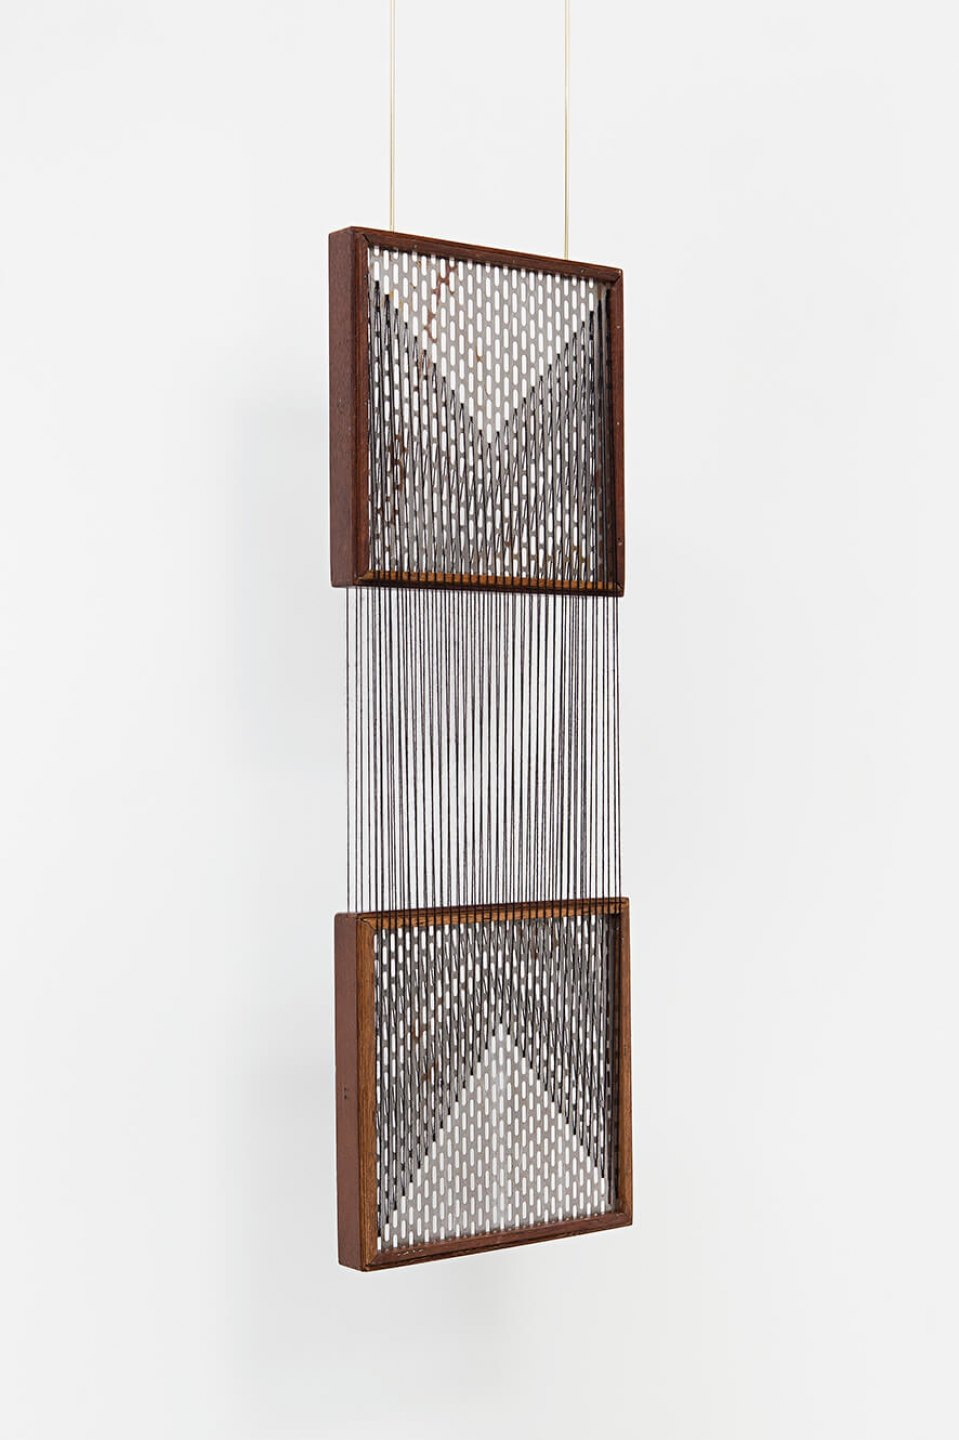 Paloma Bosquê, <em>On provisory interaction (geometry of relations #1)</em>, 2015, coffee sieve, wool and brass rods, 87,7 × 30 cm - Mendes Wood DM